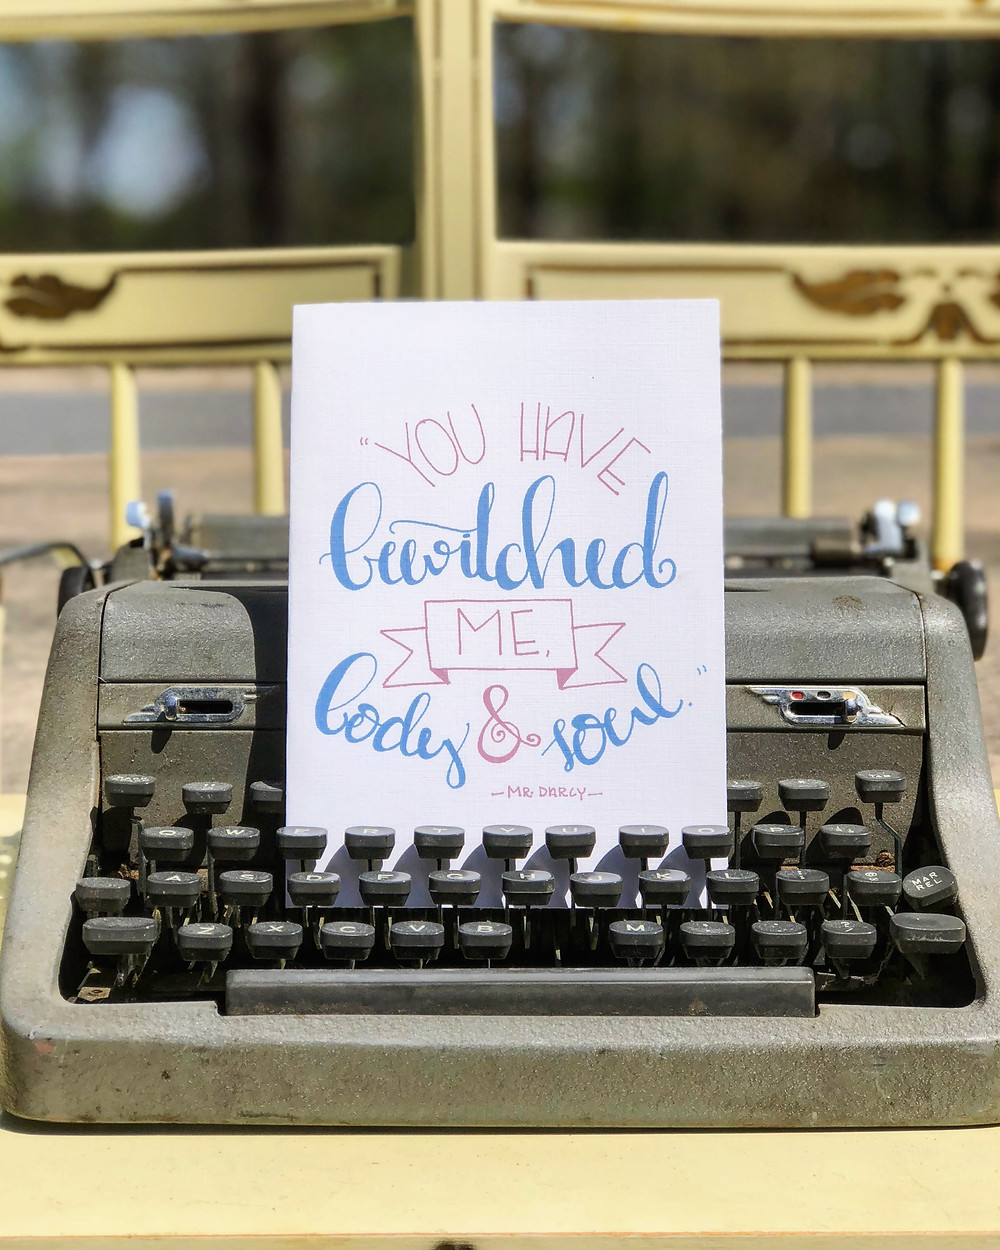 """This is a photo of a Jane Austen inspired card. The quote on the card is, """"You have bewitched me, body & soul,"""" words spoken by Mr. Darcy in Austen's novel."""